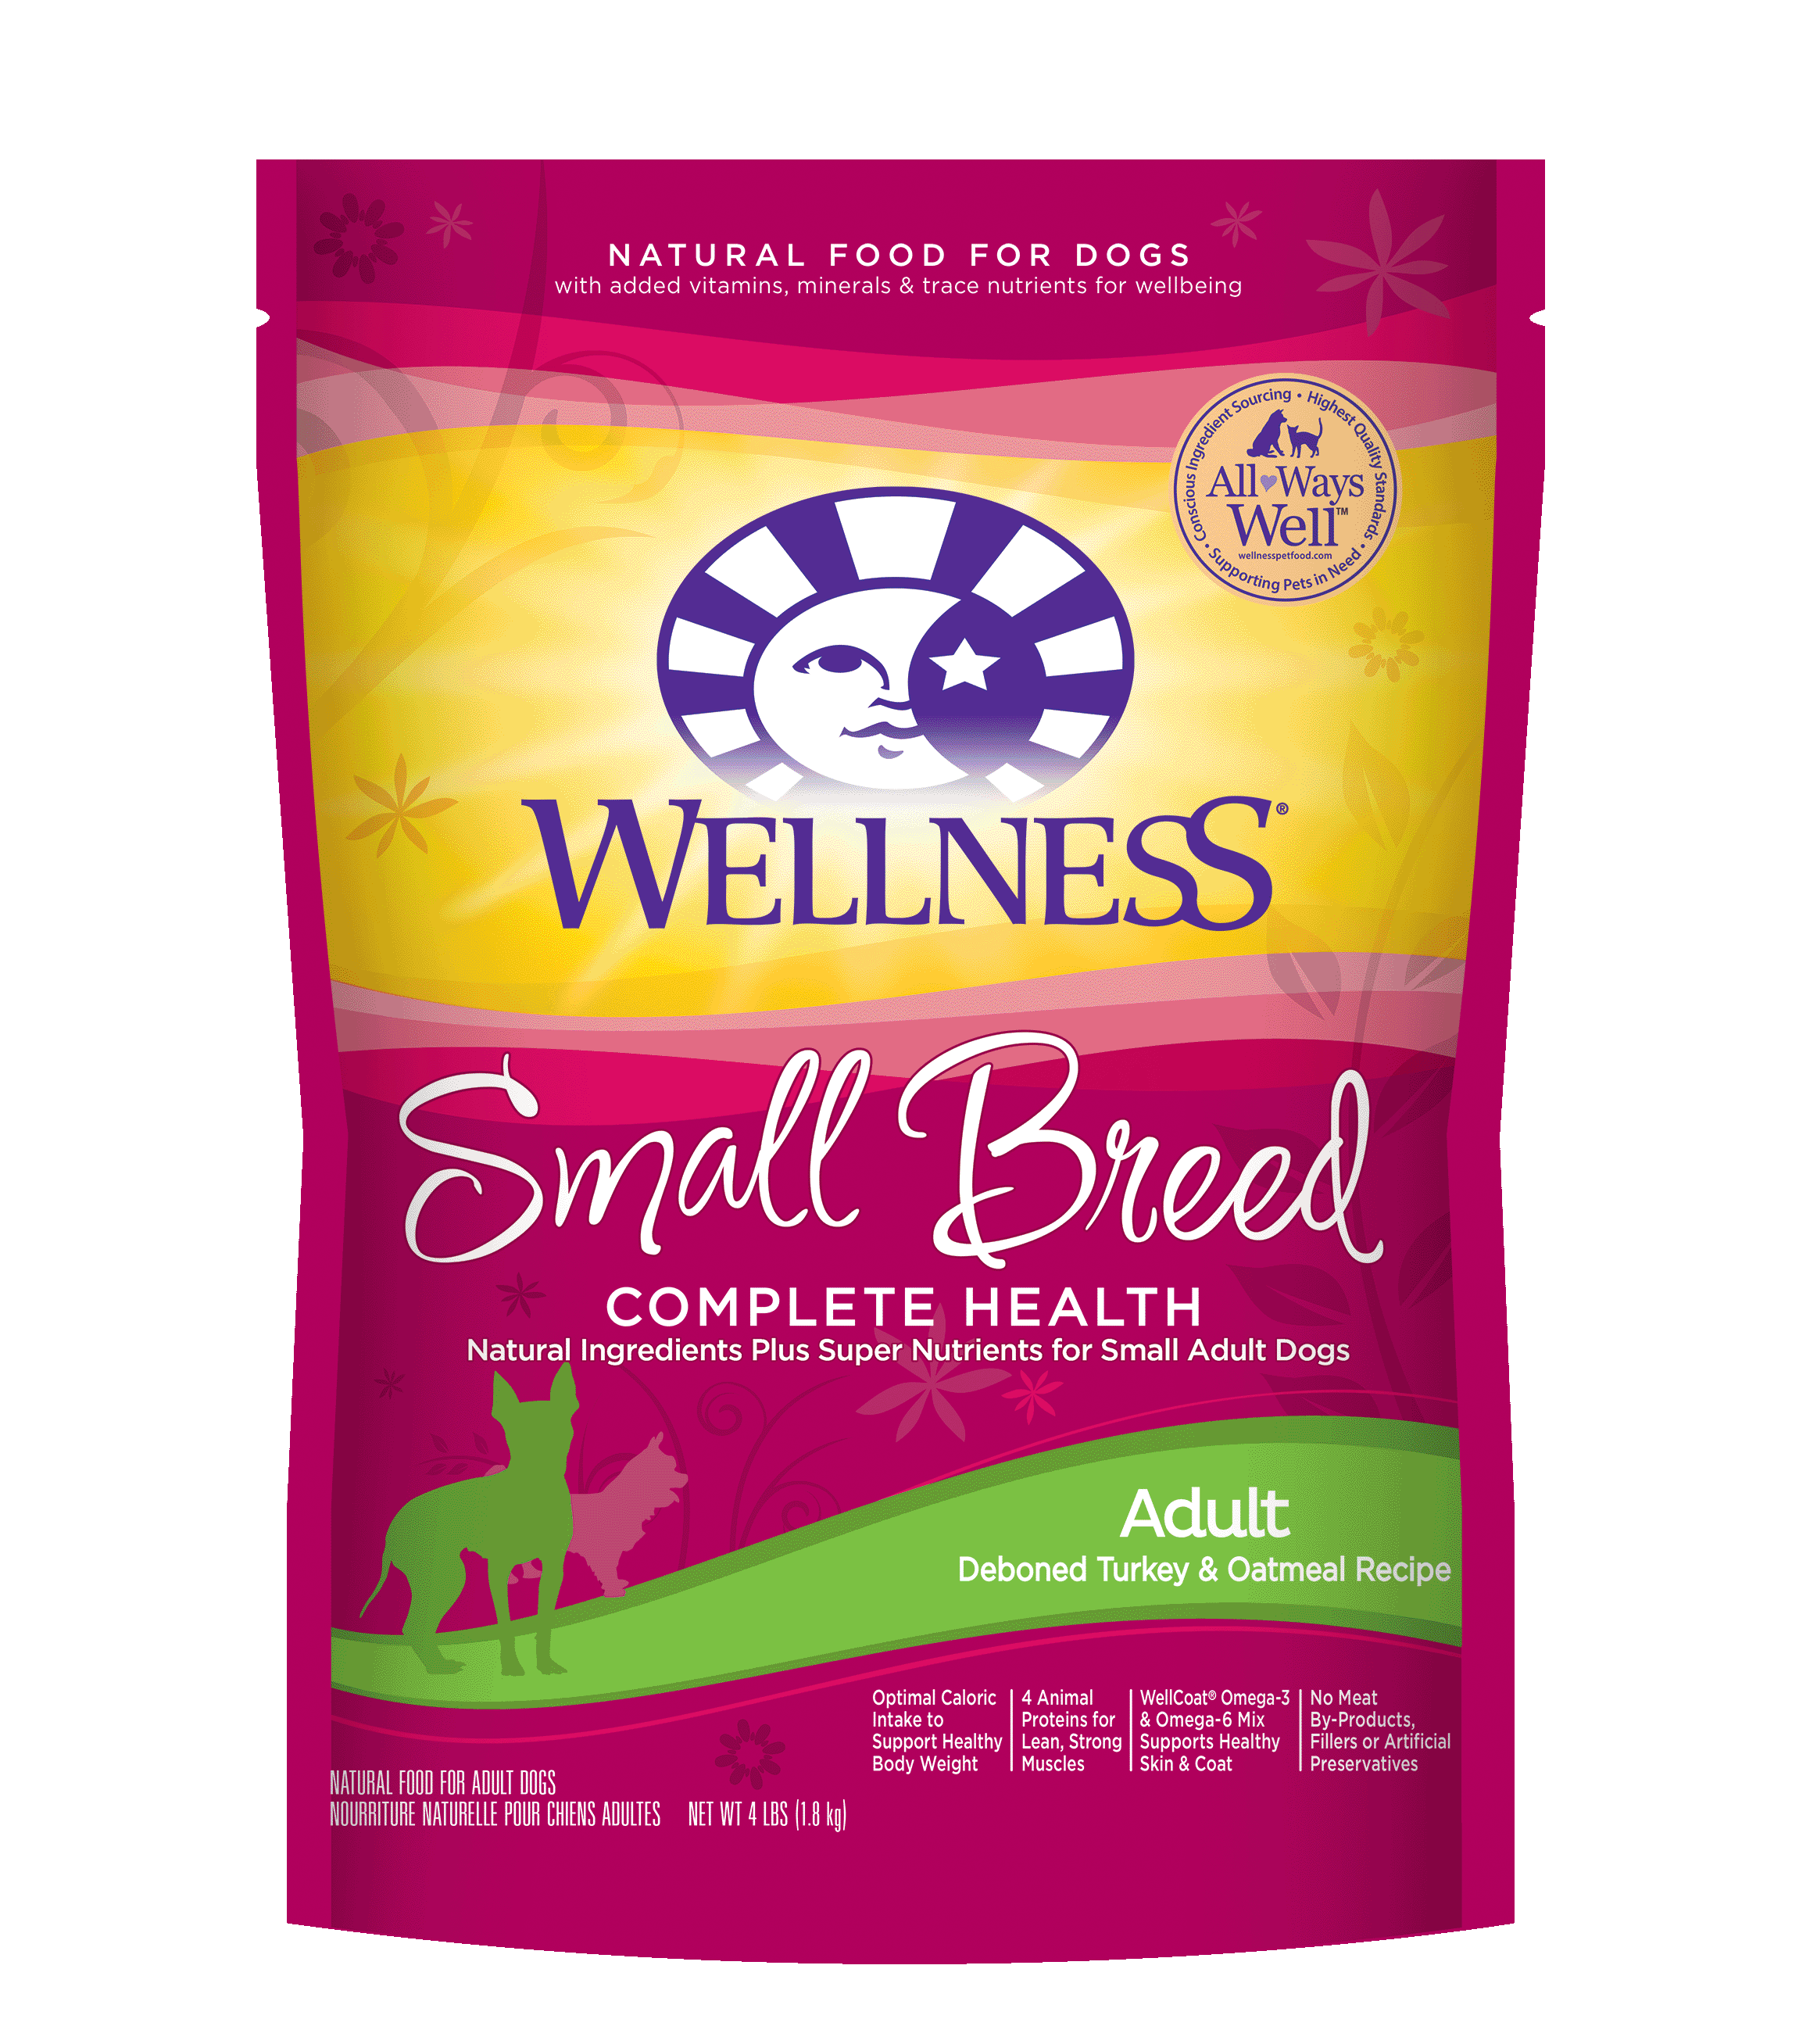 Small Breed Complete Health Adult Turkey Amp Oatmeal Recipe